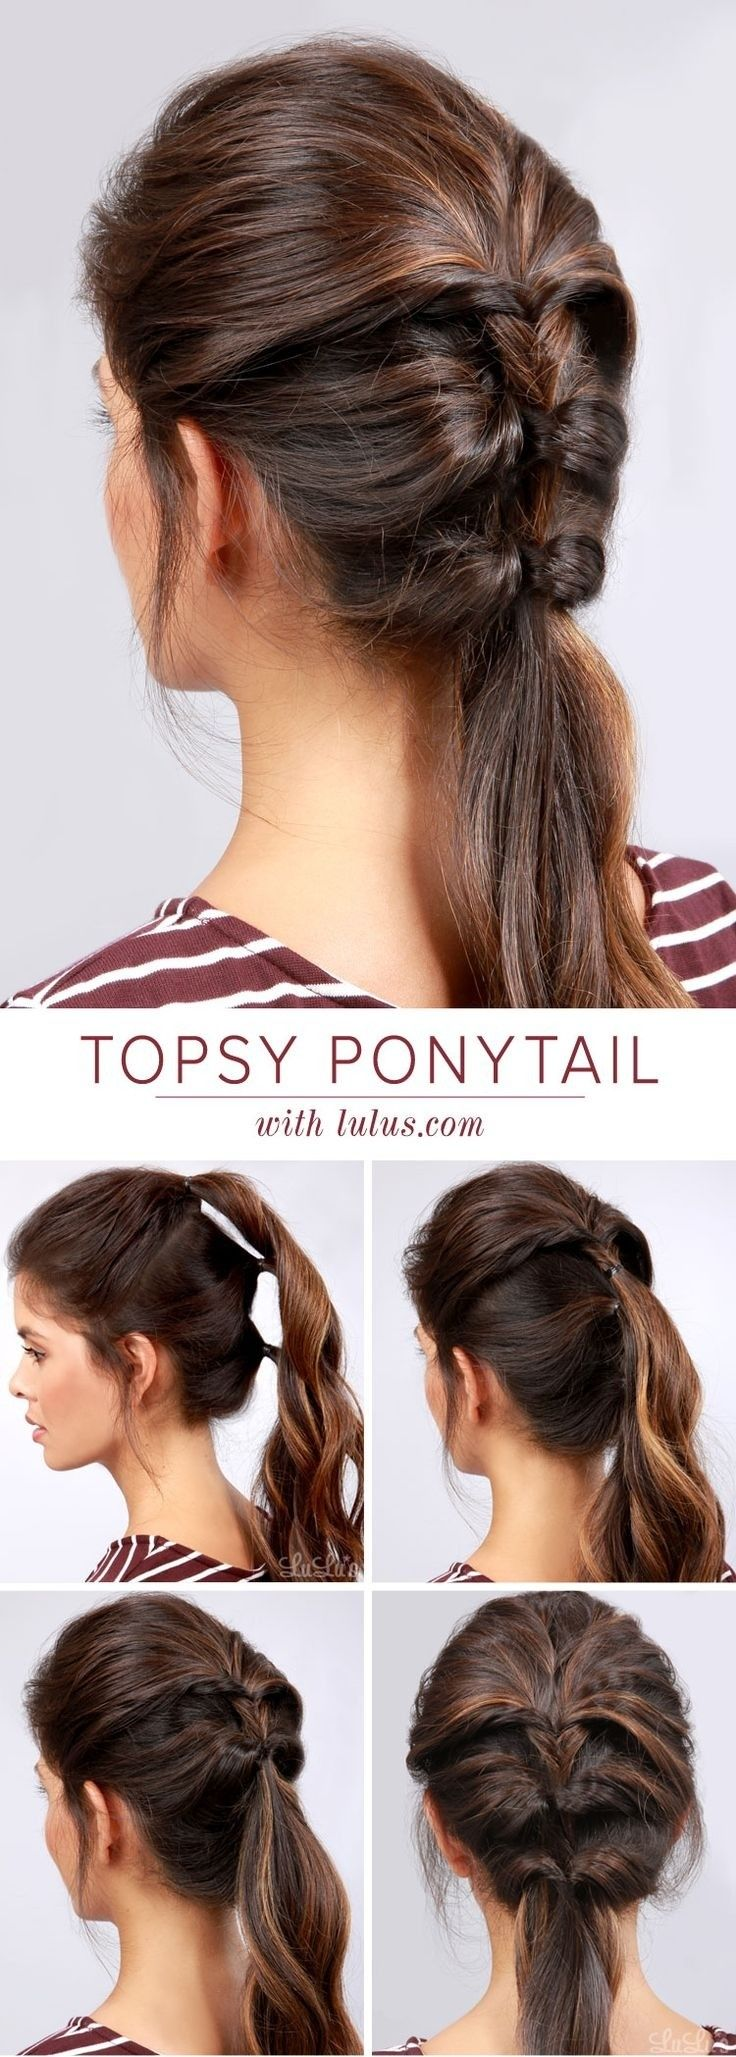 Pleasant 1000 Ideas About Short Ponytail Hairstyles On Pinterest Short Short Hairstyles Gunalazisus